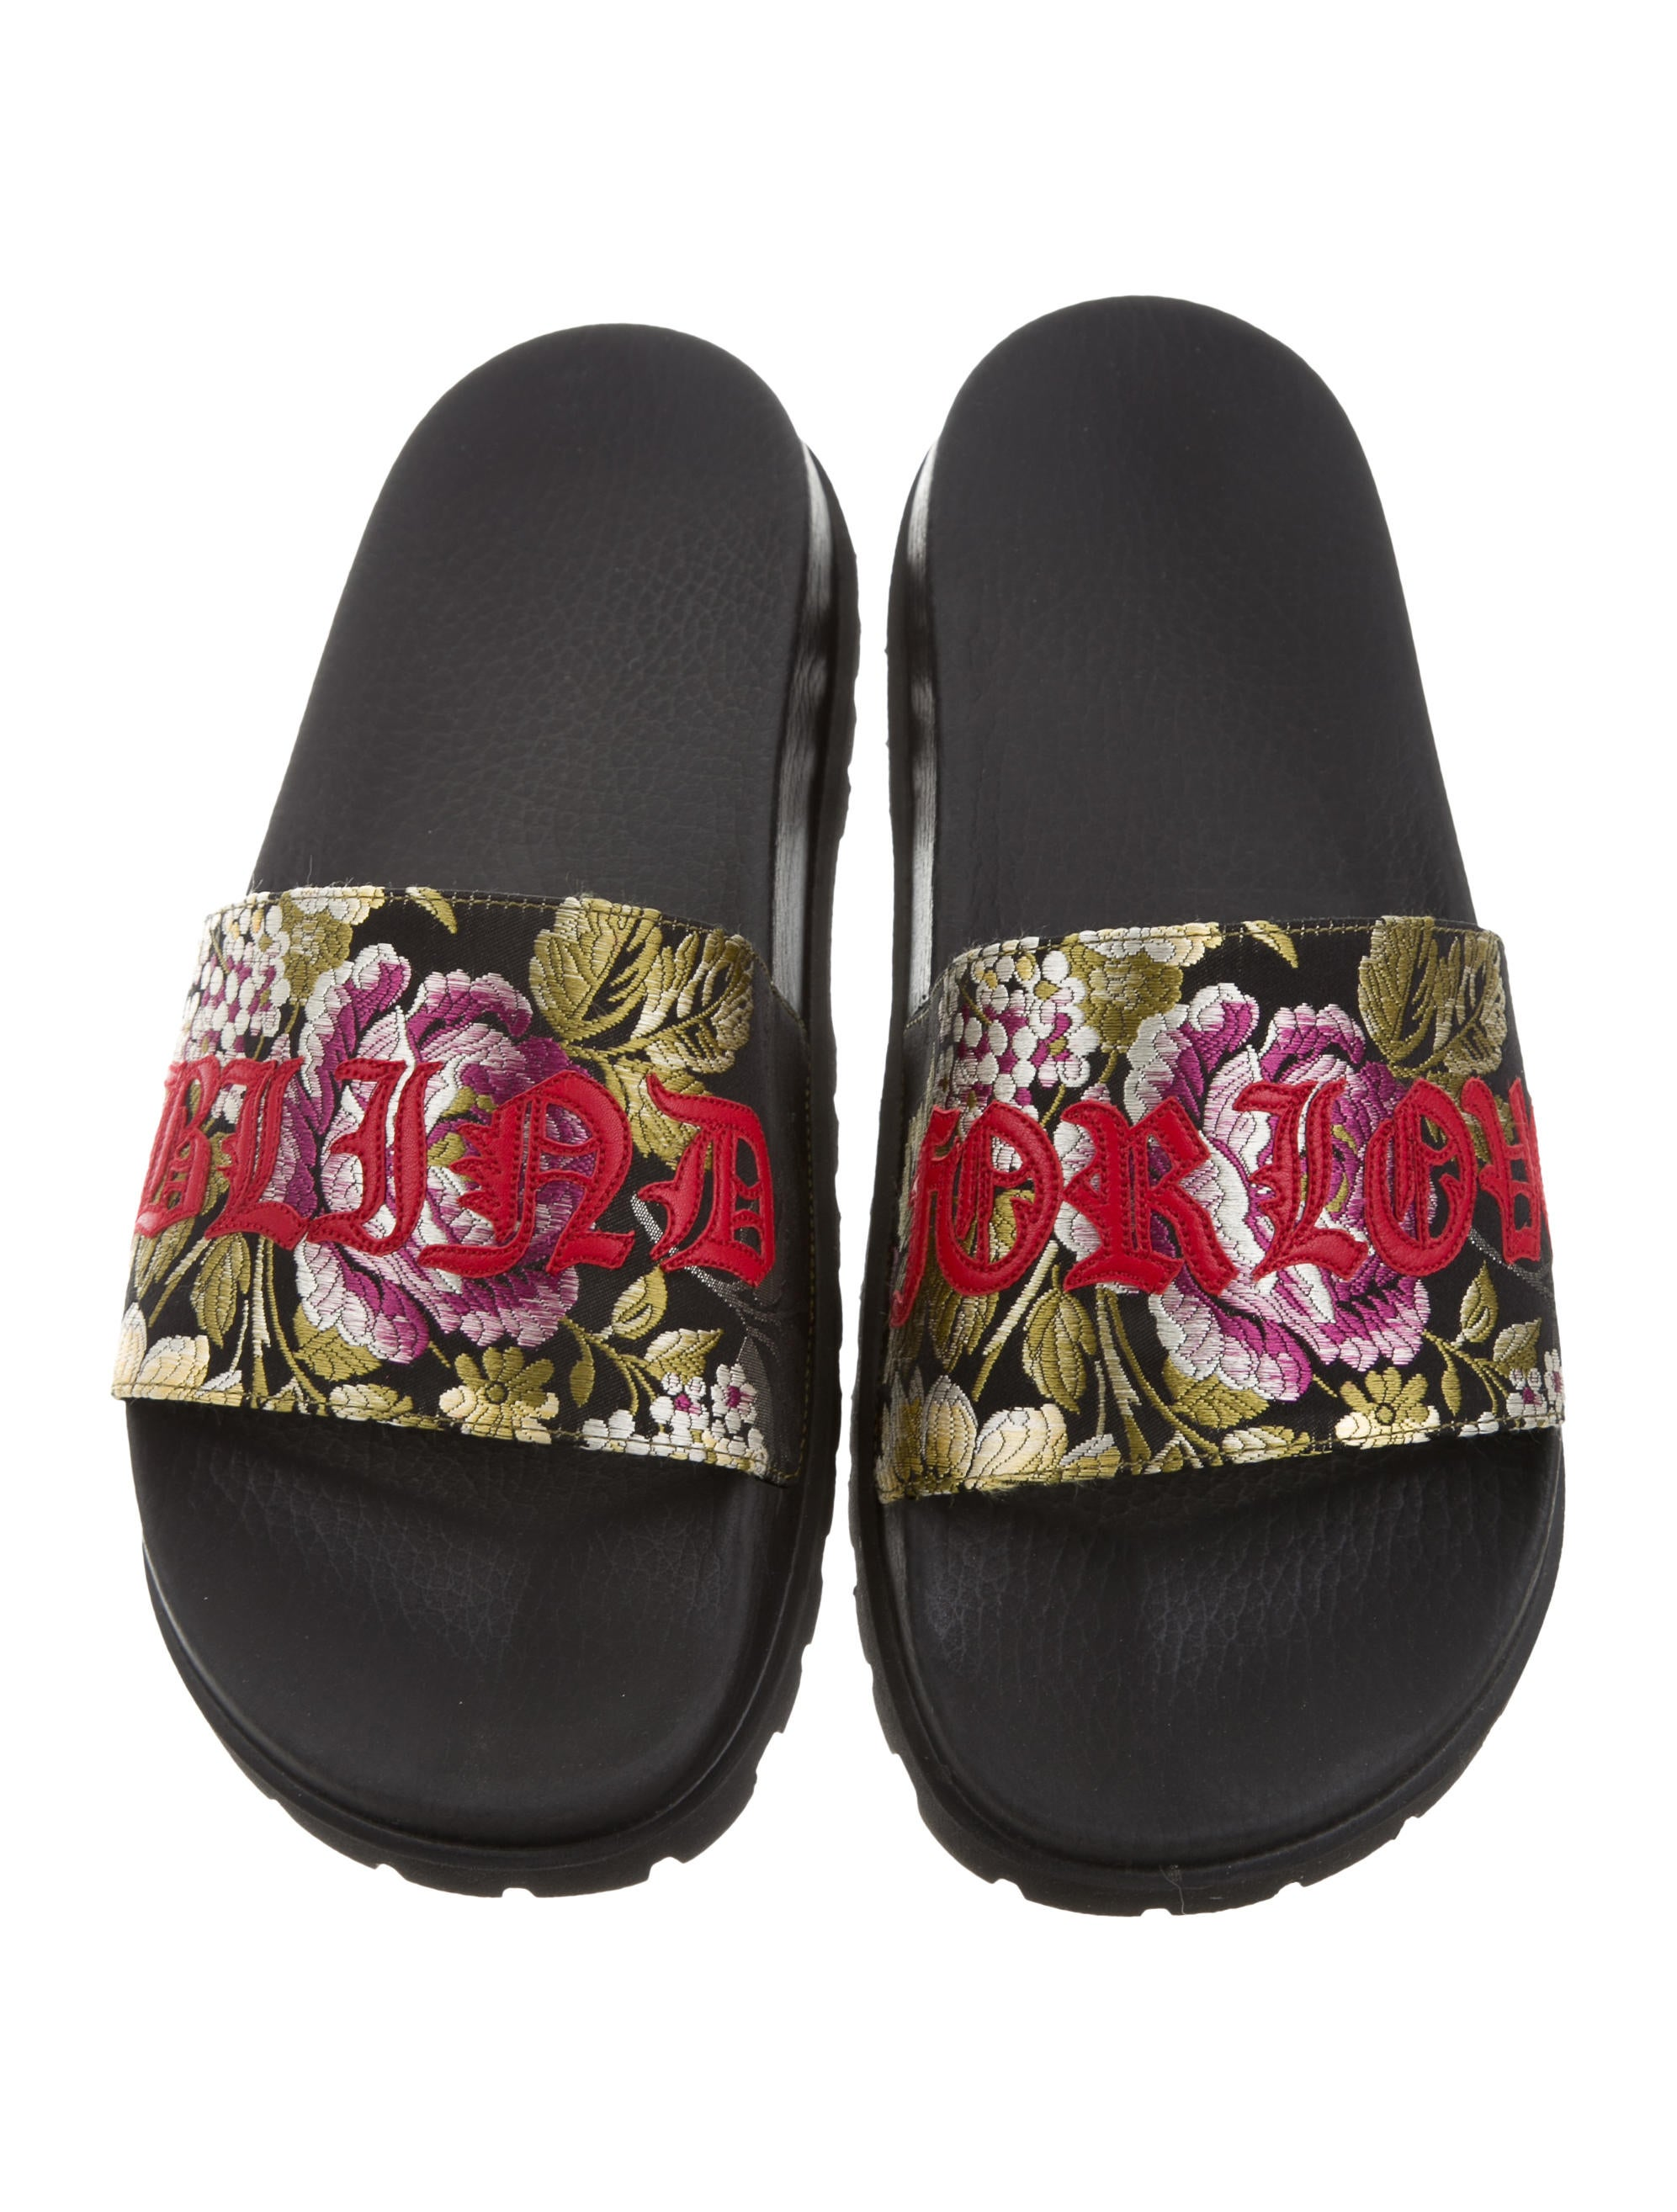 gucci pursuit floral jacquard sandals w   tags - shoes